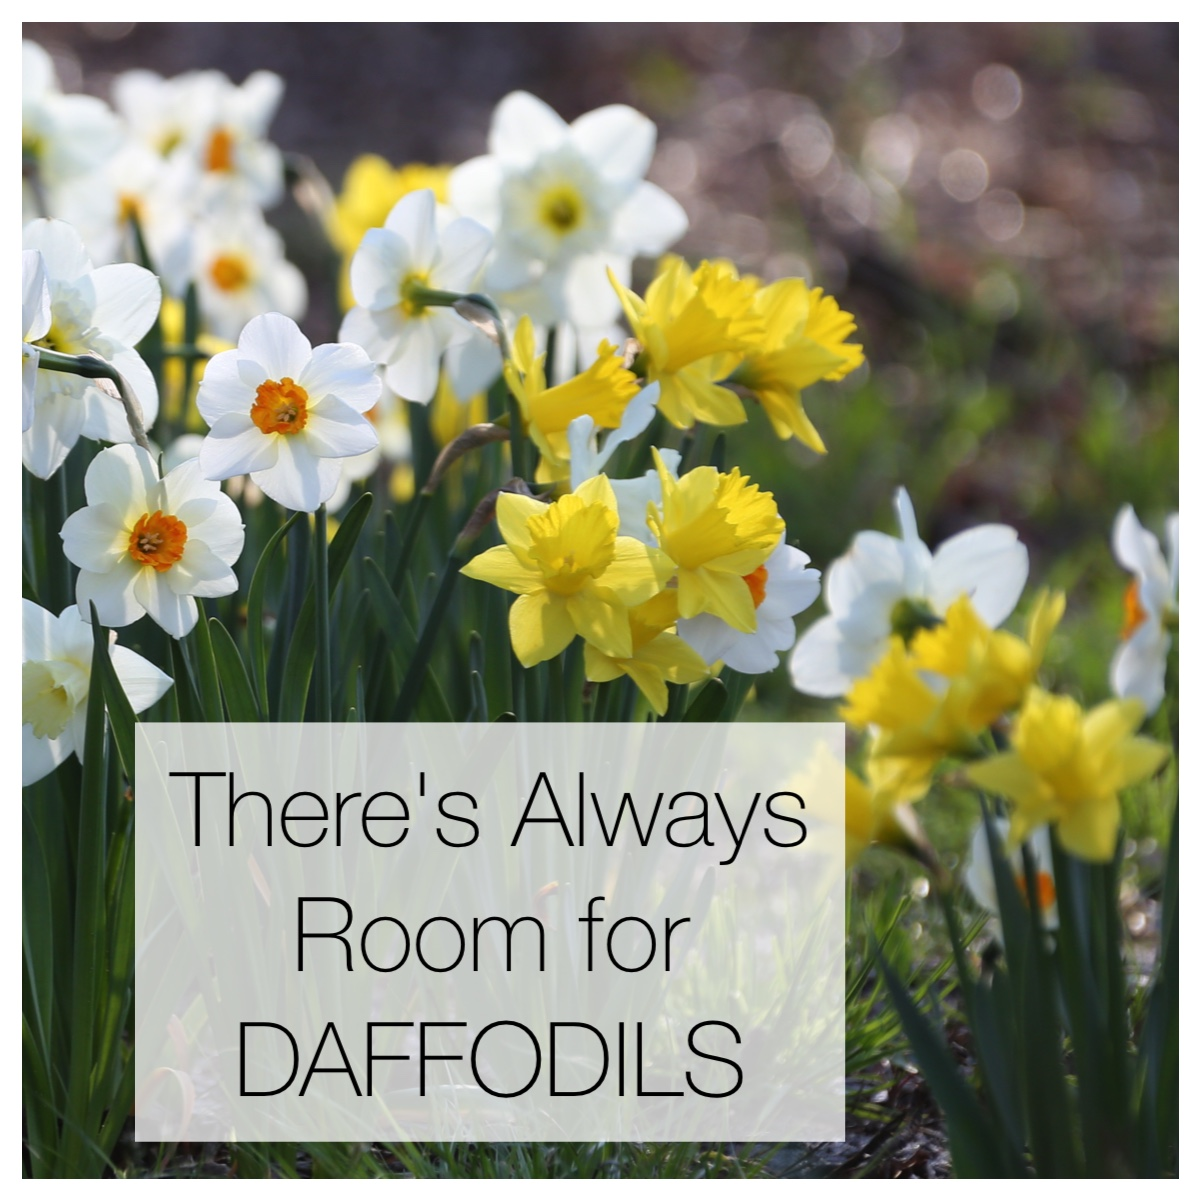 There's Always Room for Daffodils